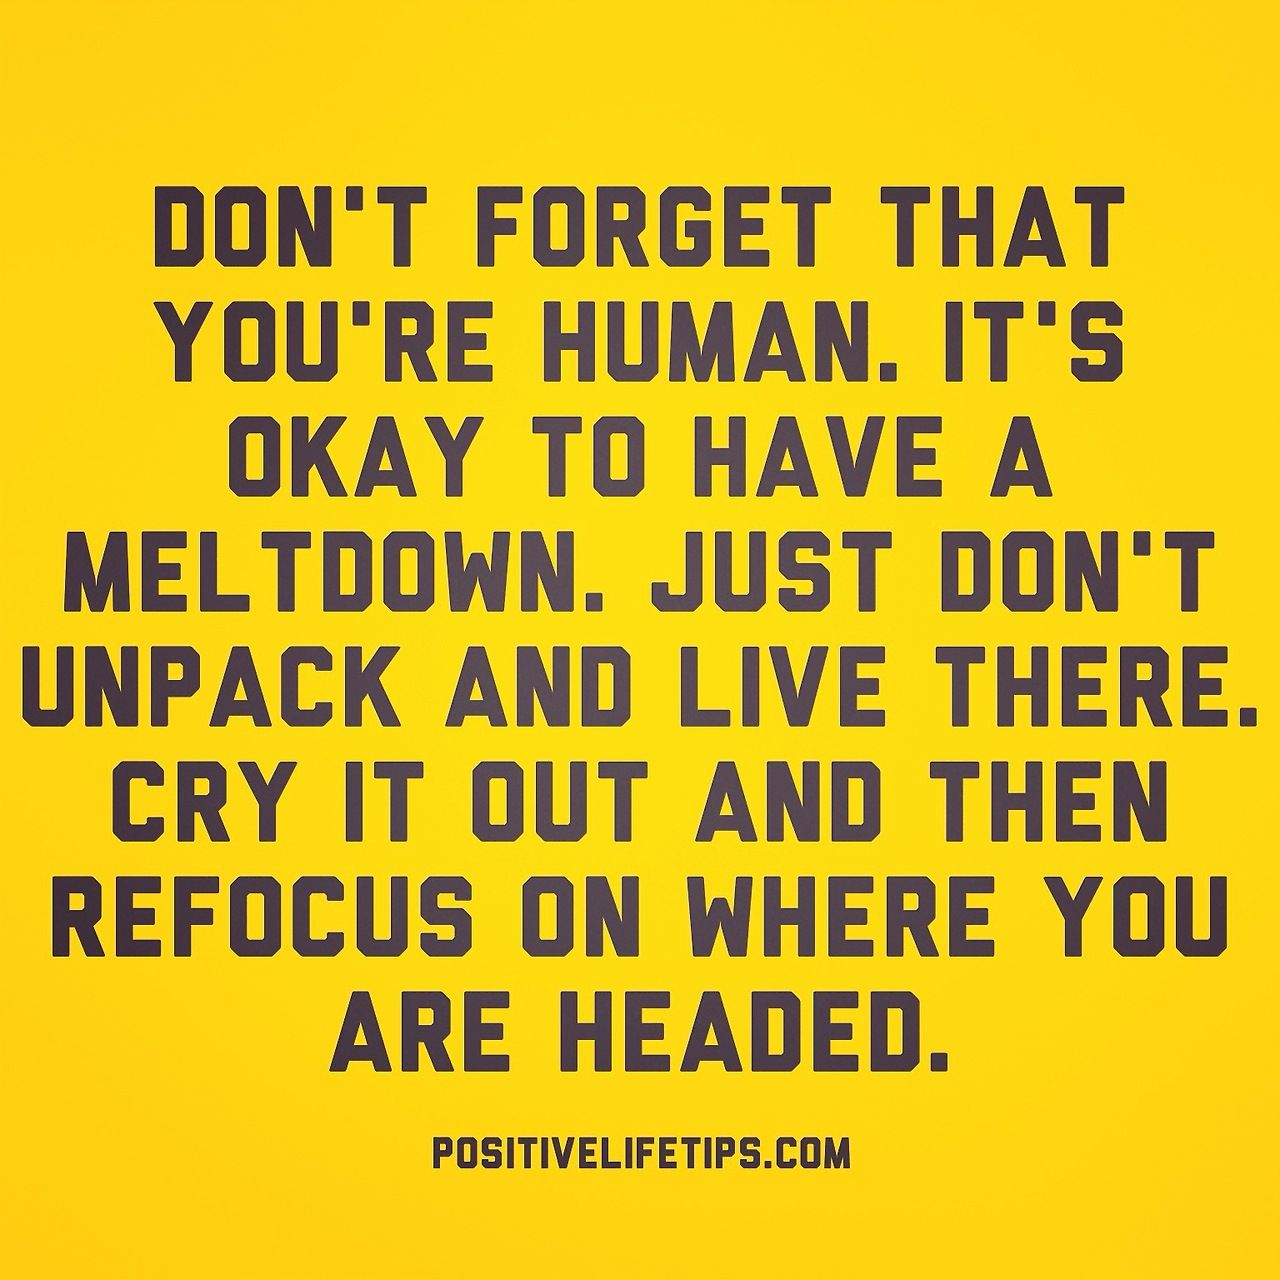 Positivelifetips Its Ok To Have A Bad Day Its Ok To Have A Melt